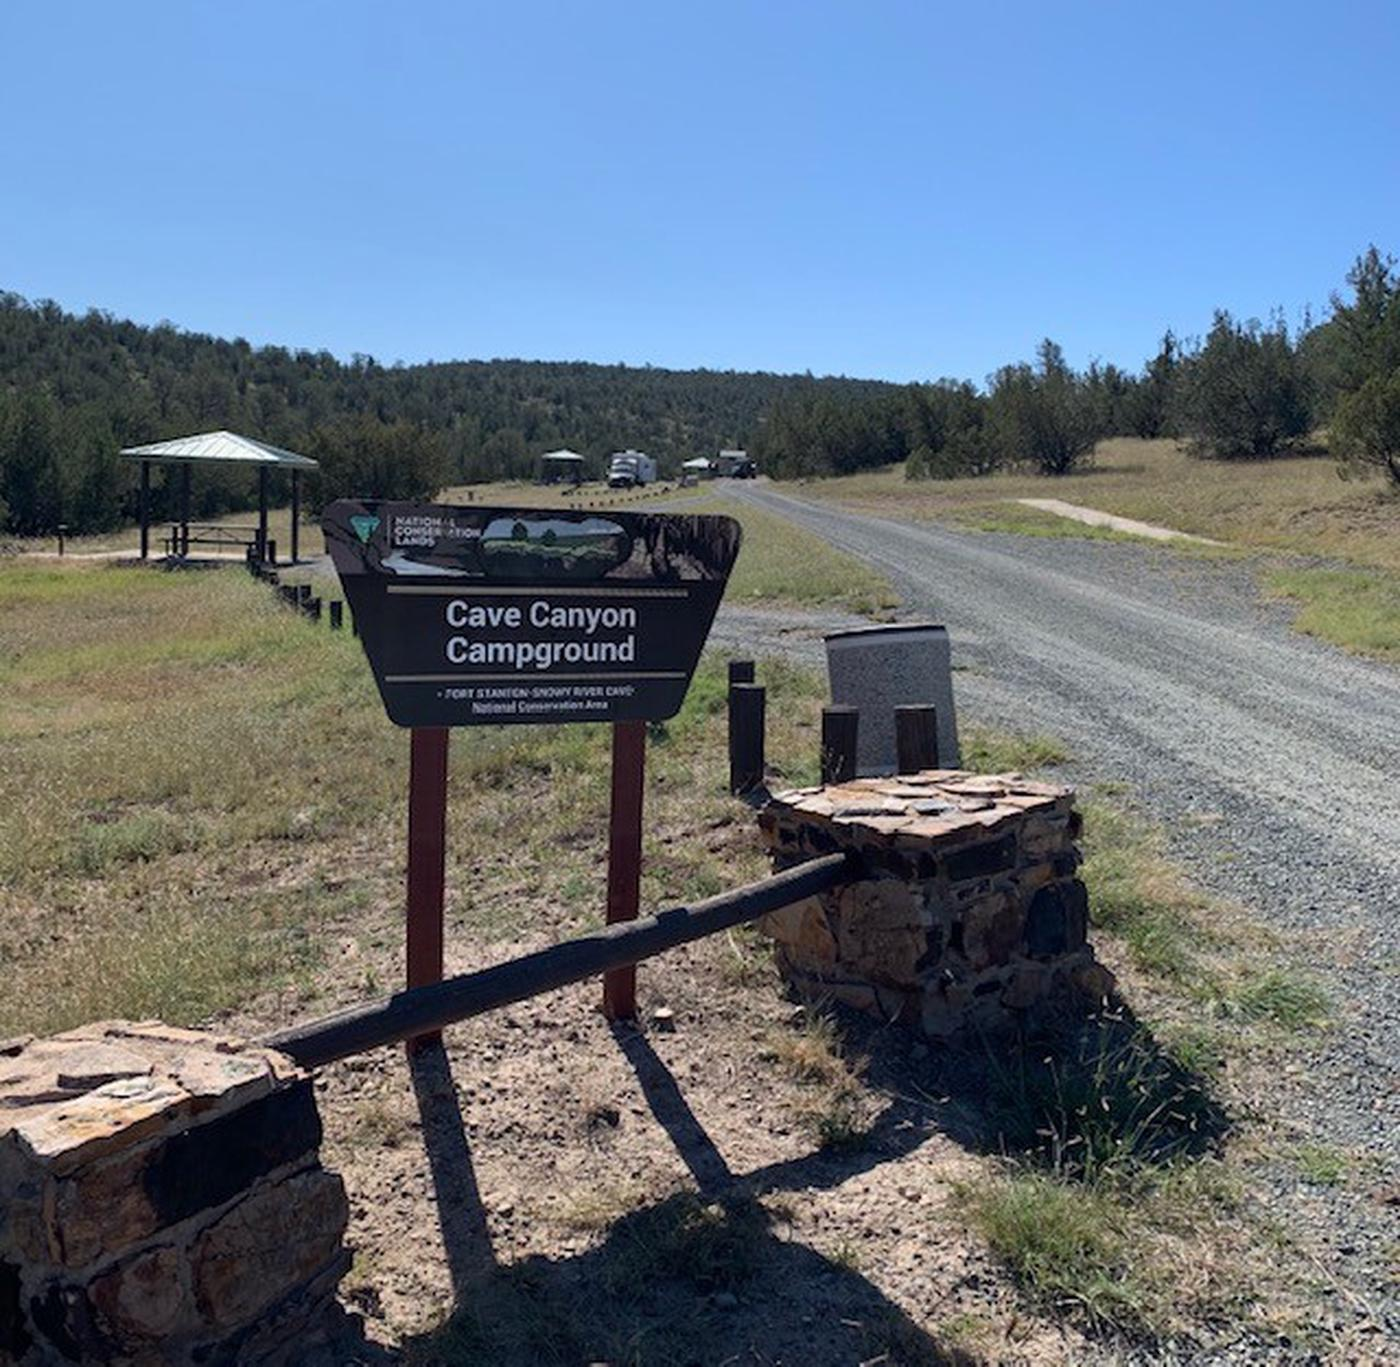 Cave Canyon Campground Entrance SignPhoto of entrance sign to Cave Canyon Campground